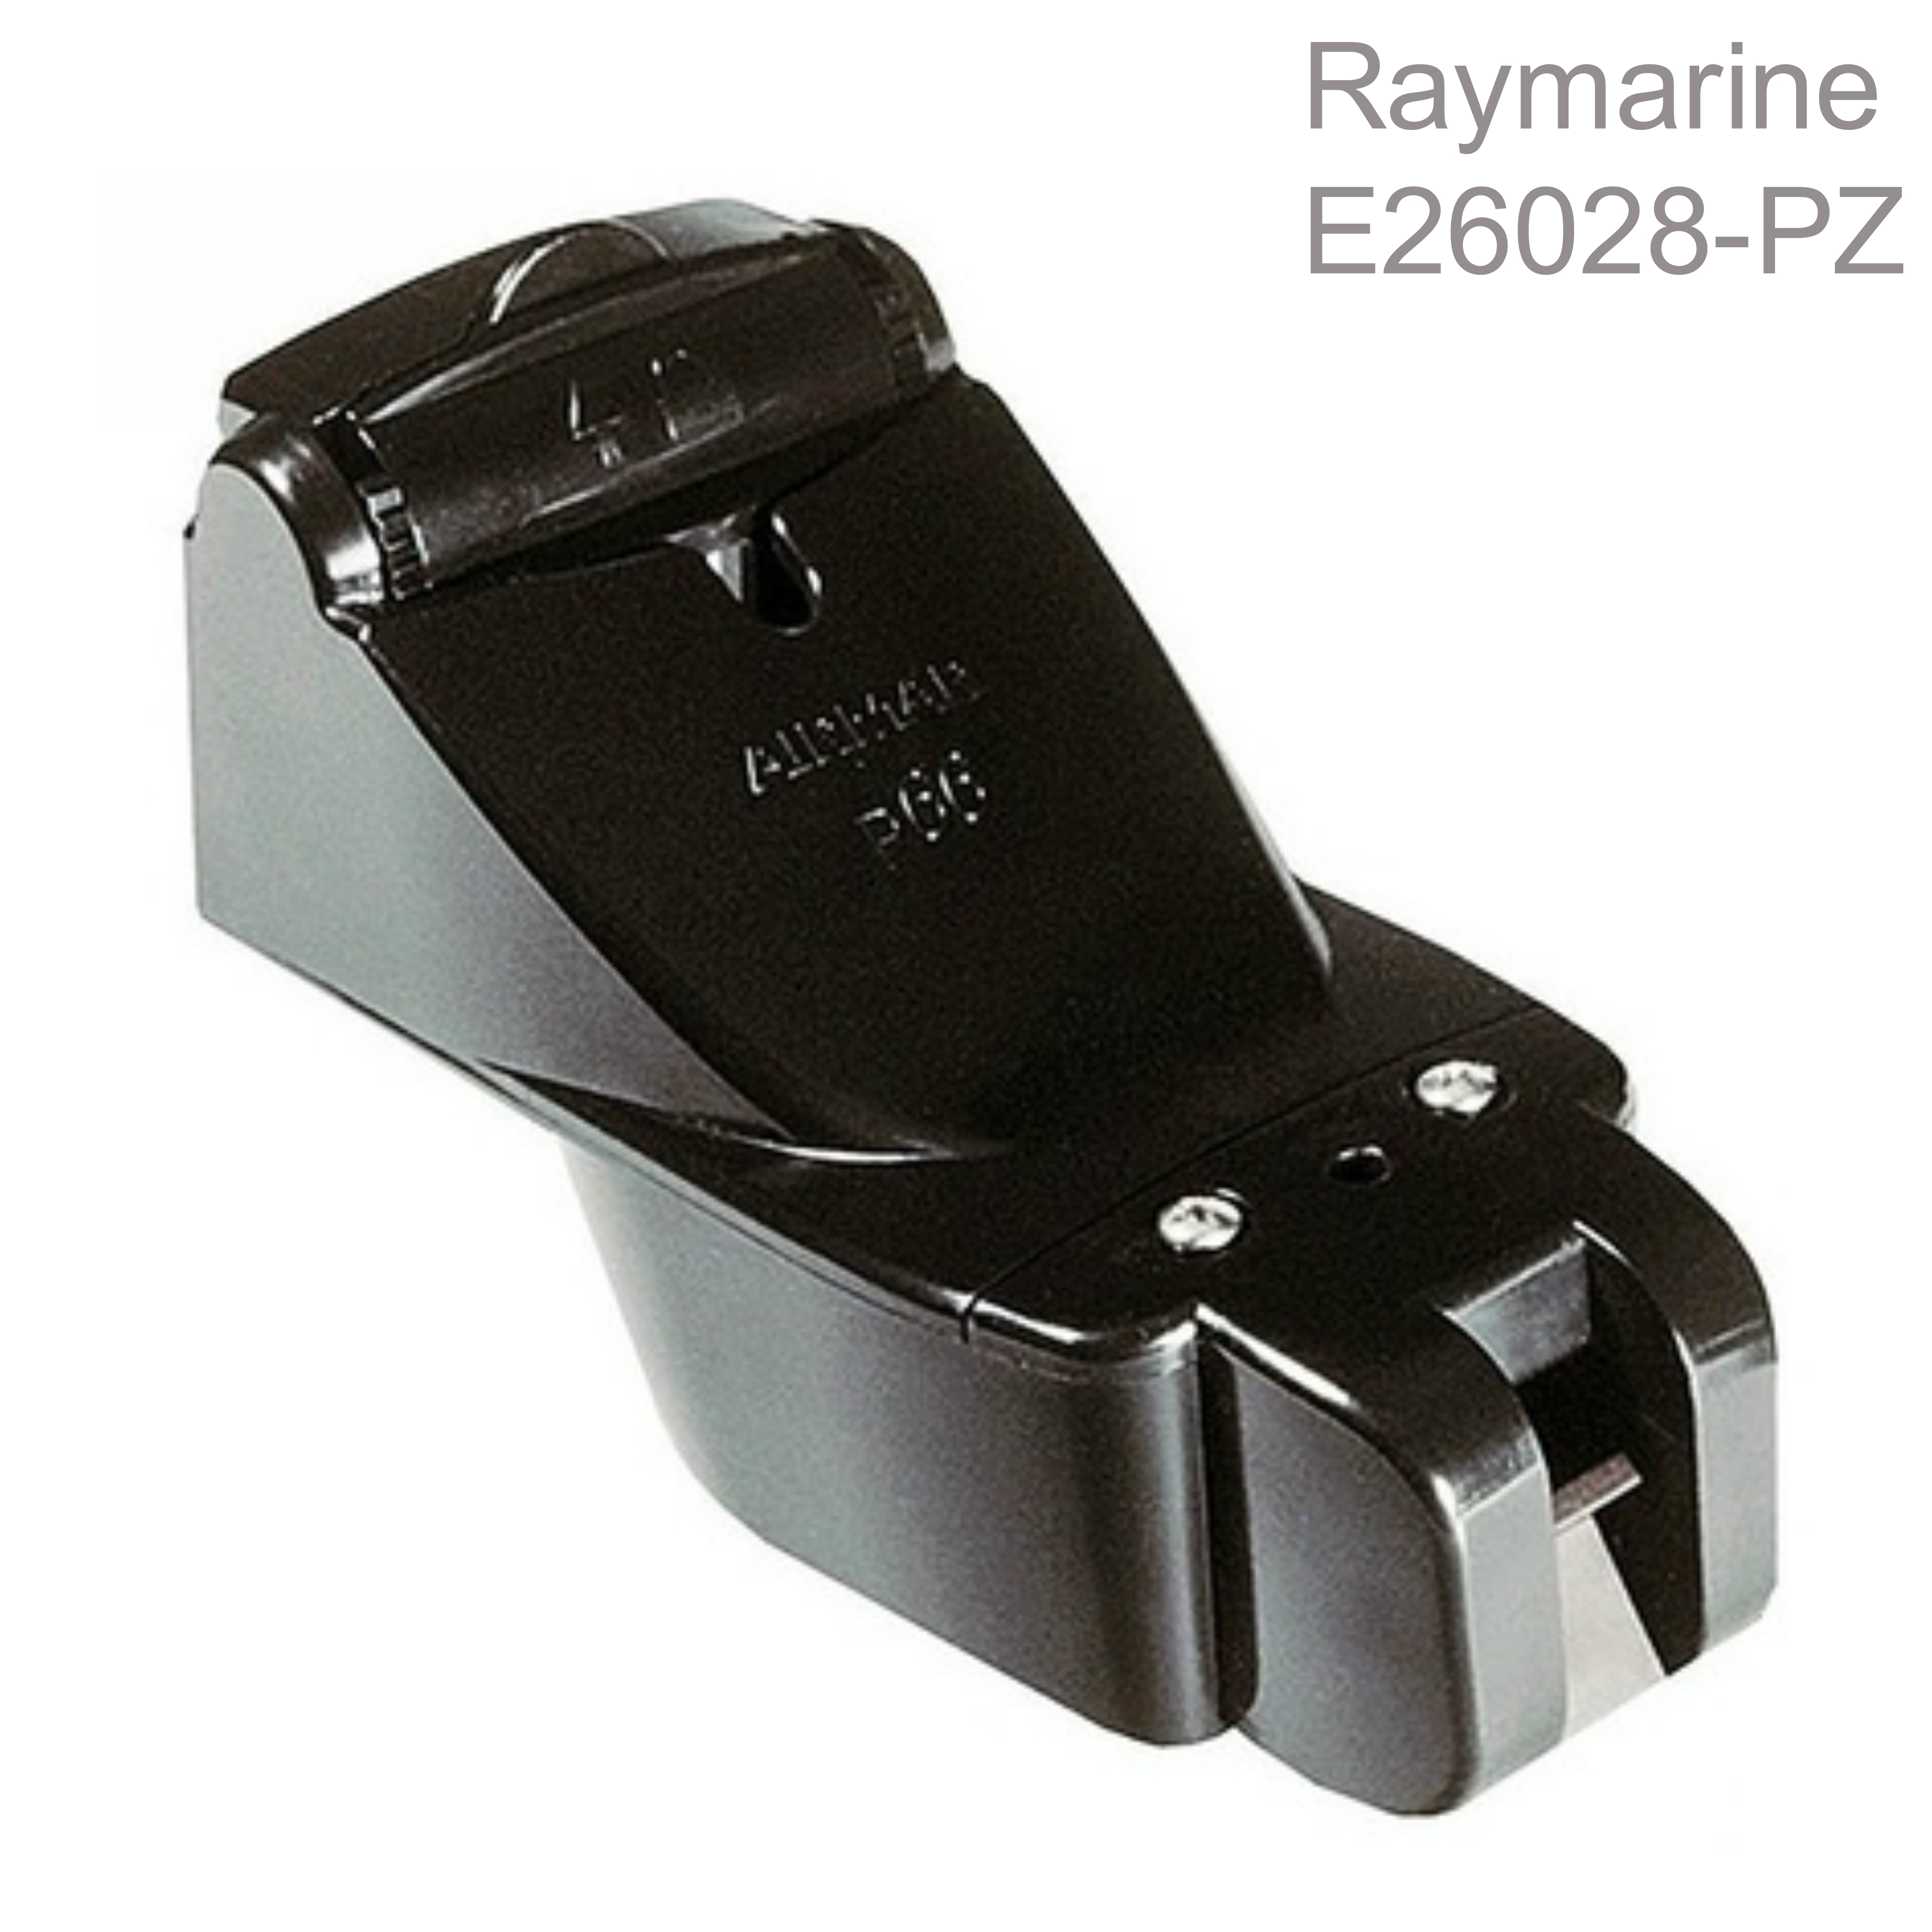 Raymarine E26028-PZ|P66 Transom Mount Transducer|Speed/ Depth/ Temp|50/200 kHz